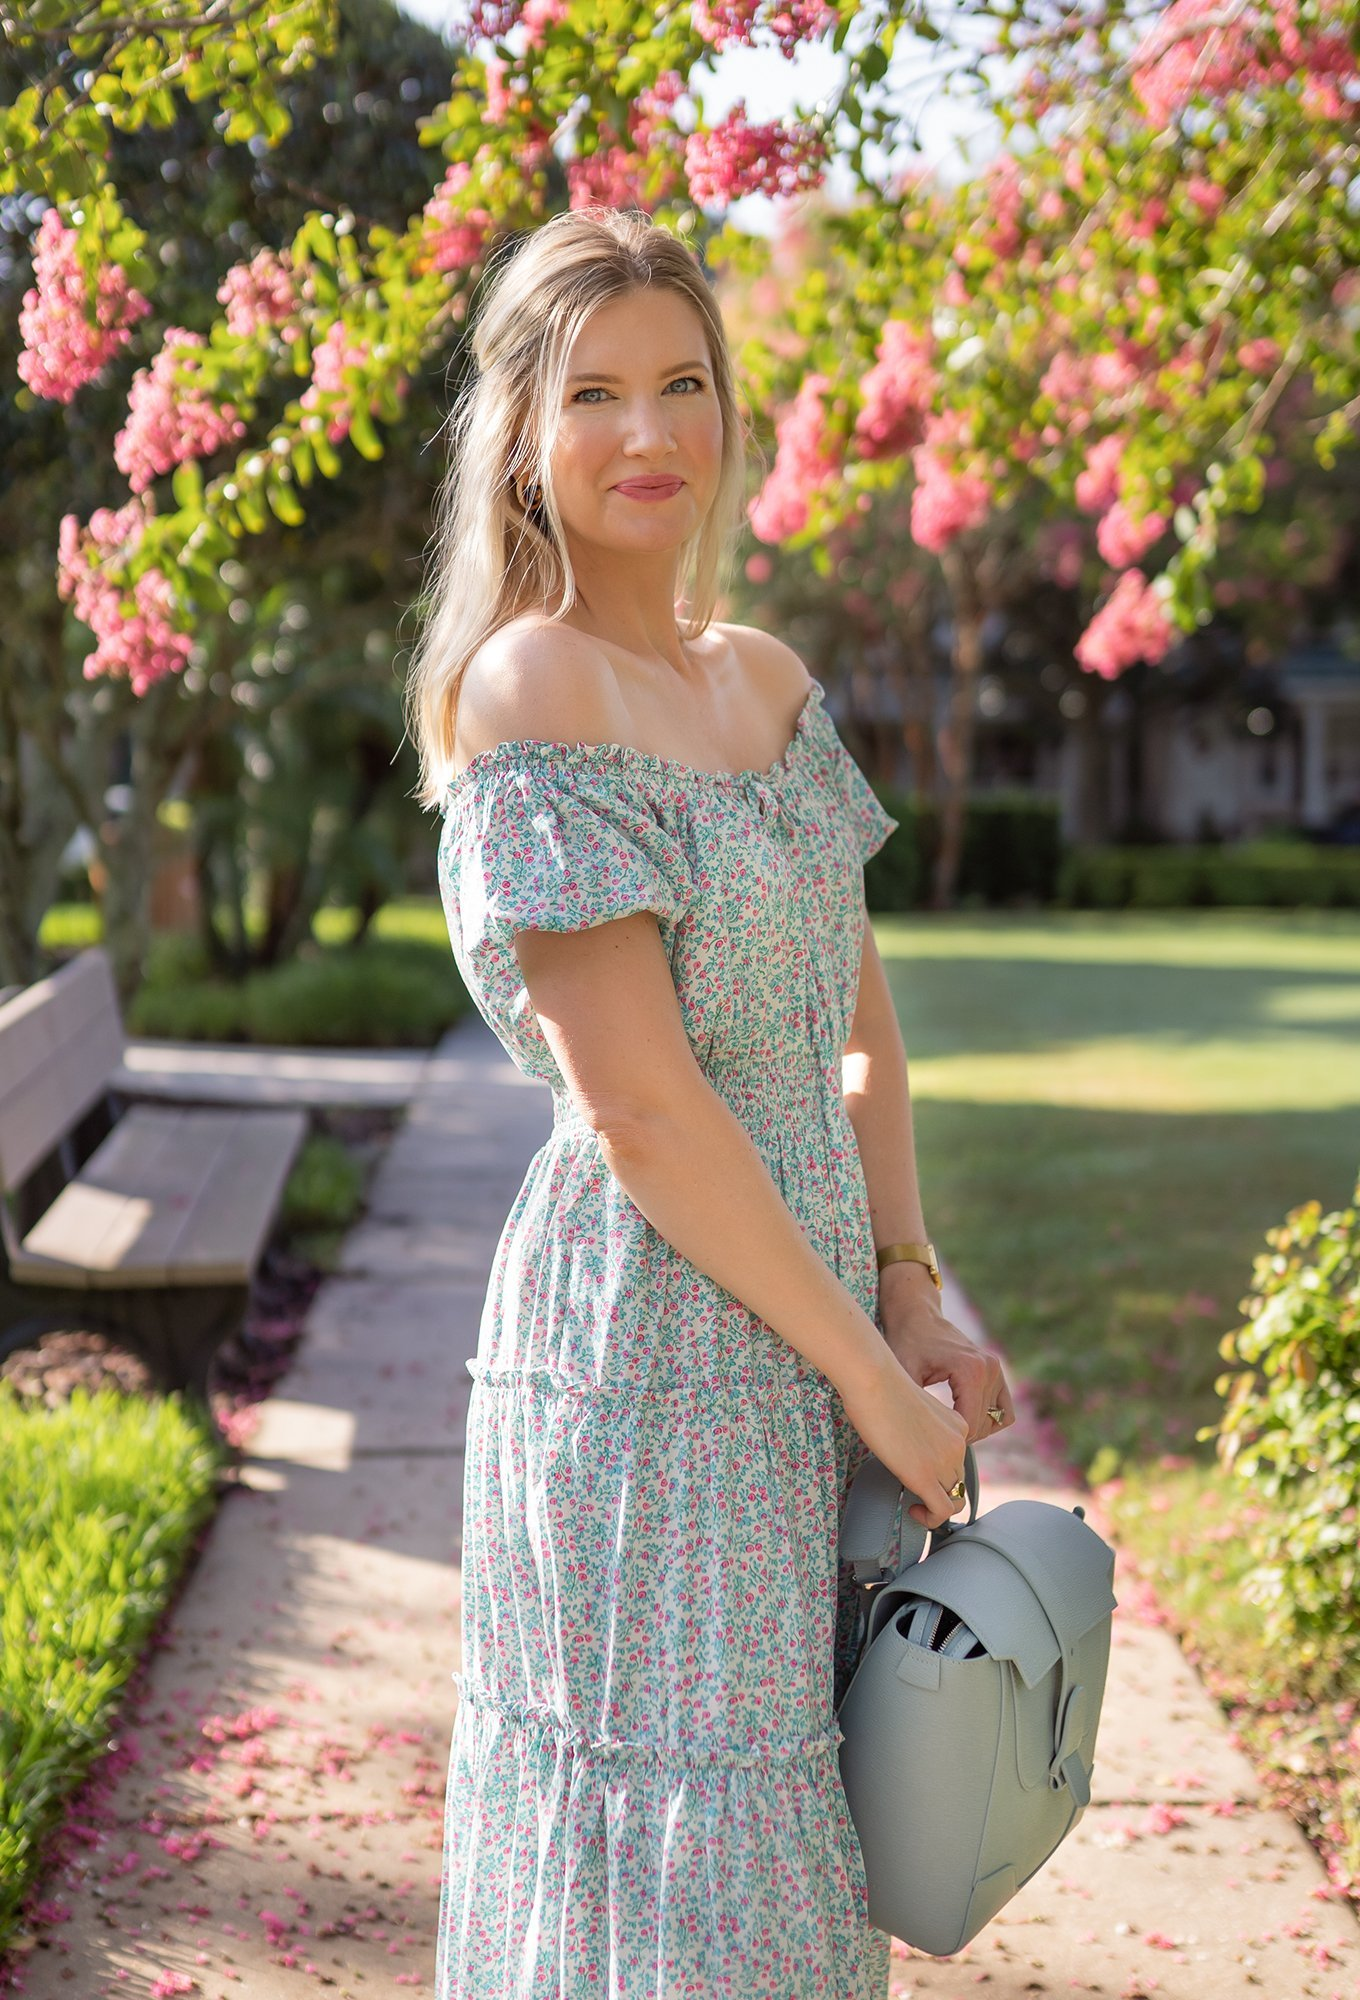 Puff-sleeve midi dress in floral - Ashley Brooke - 9